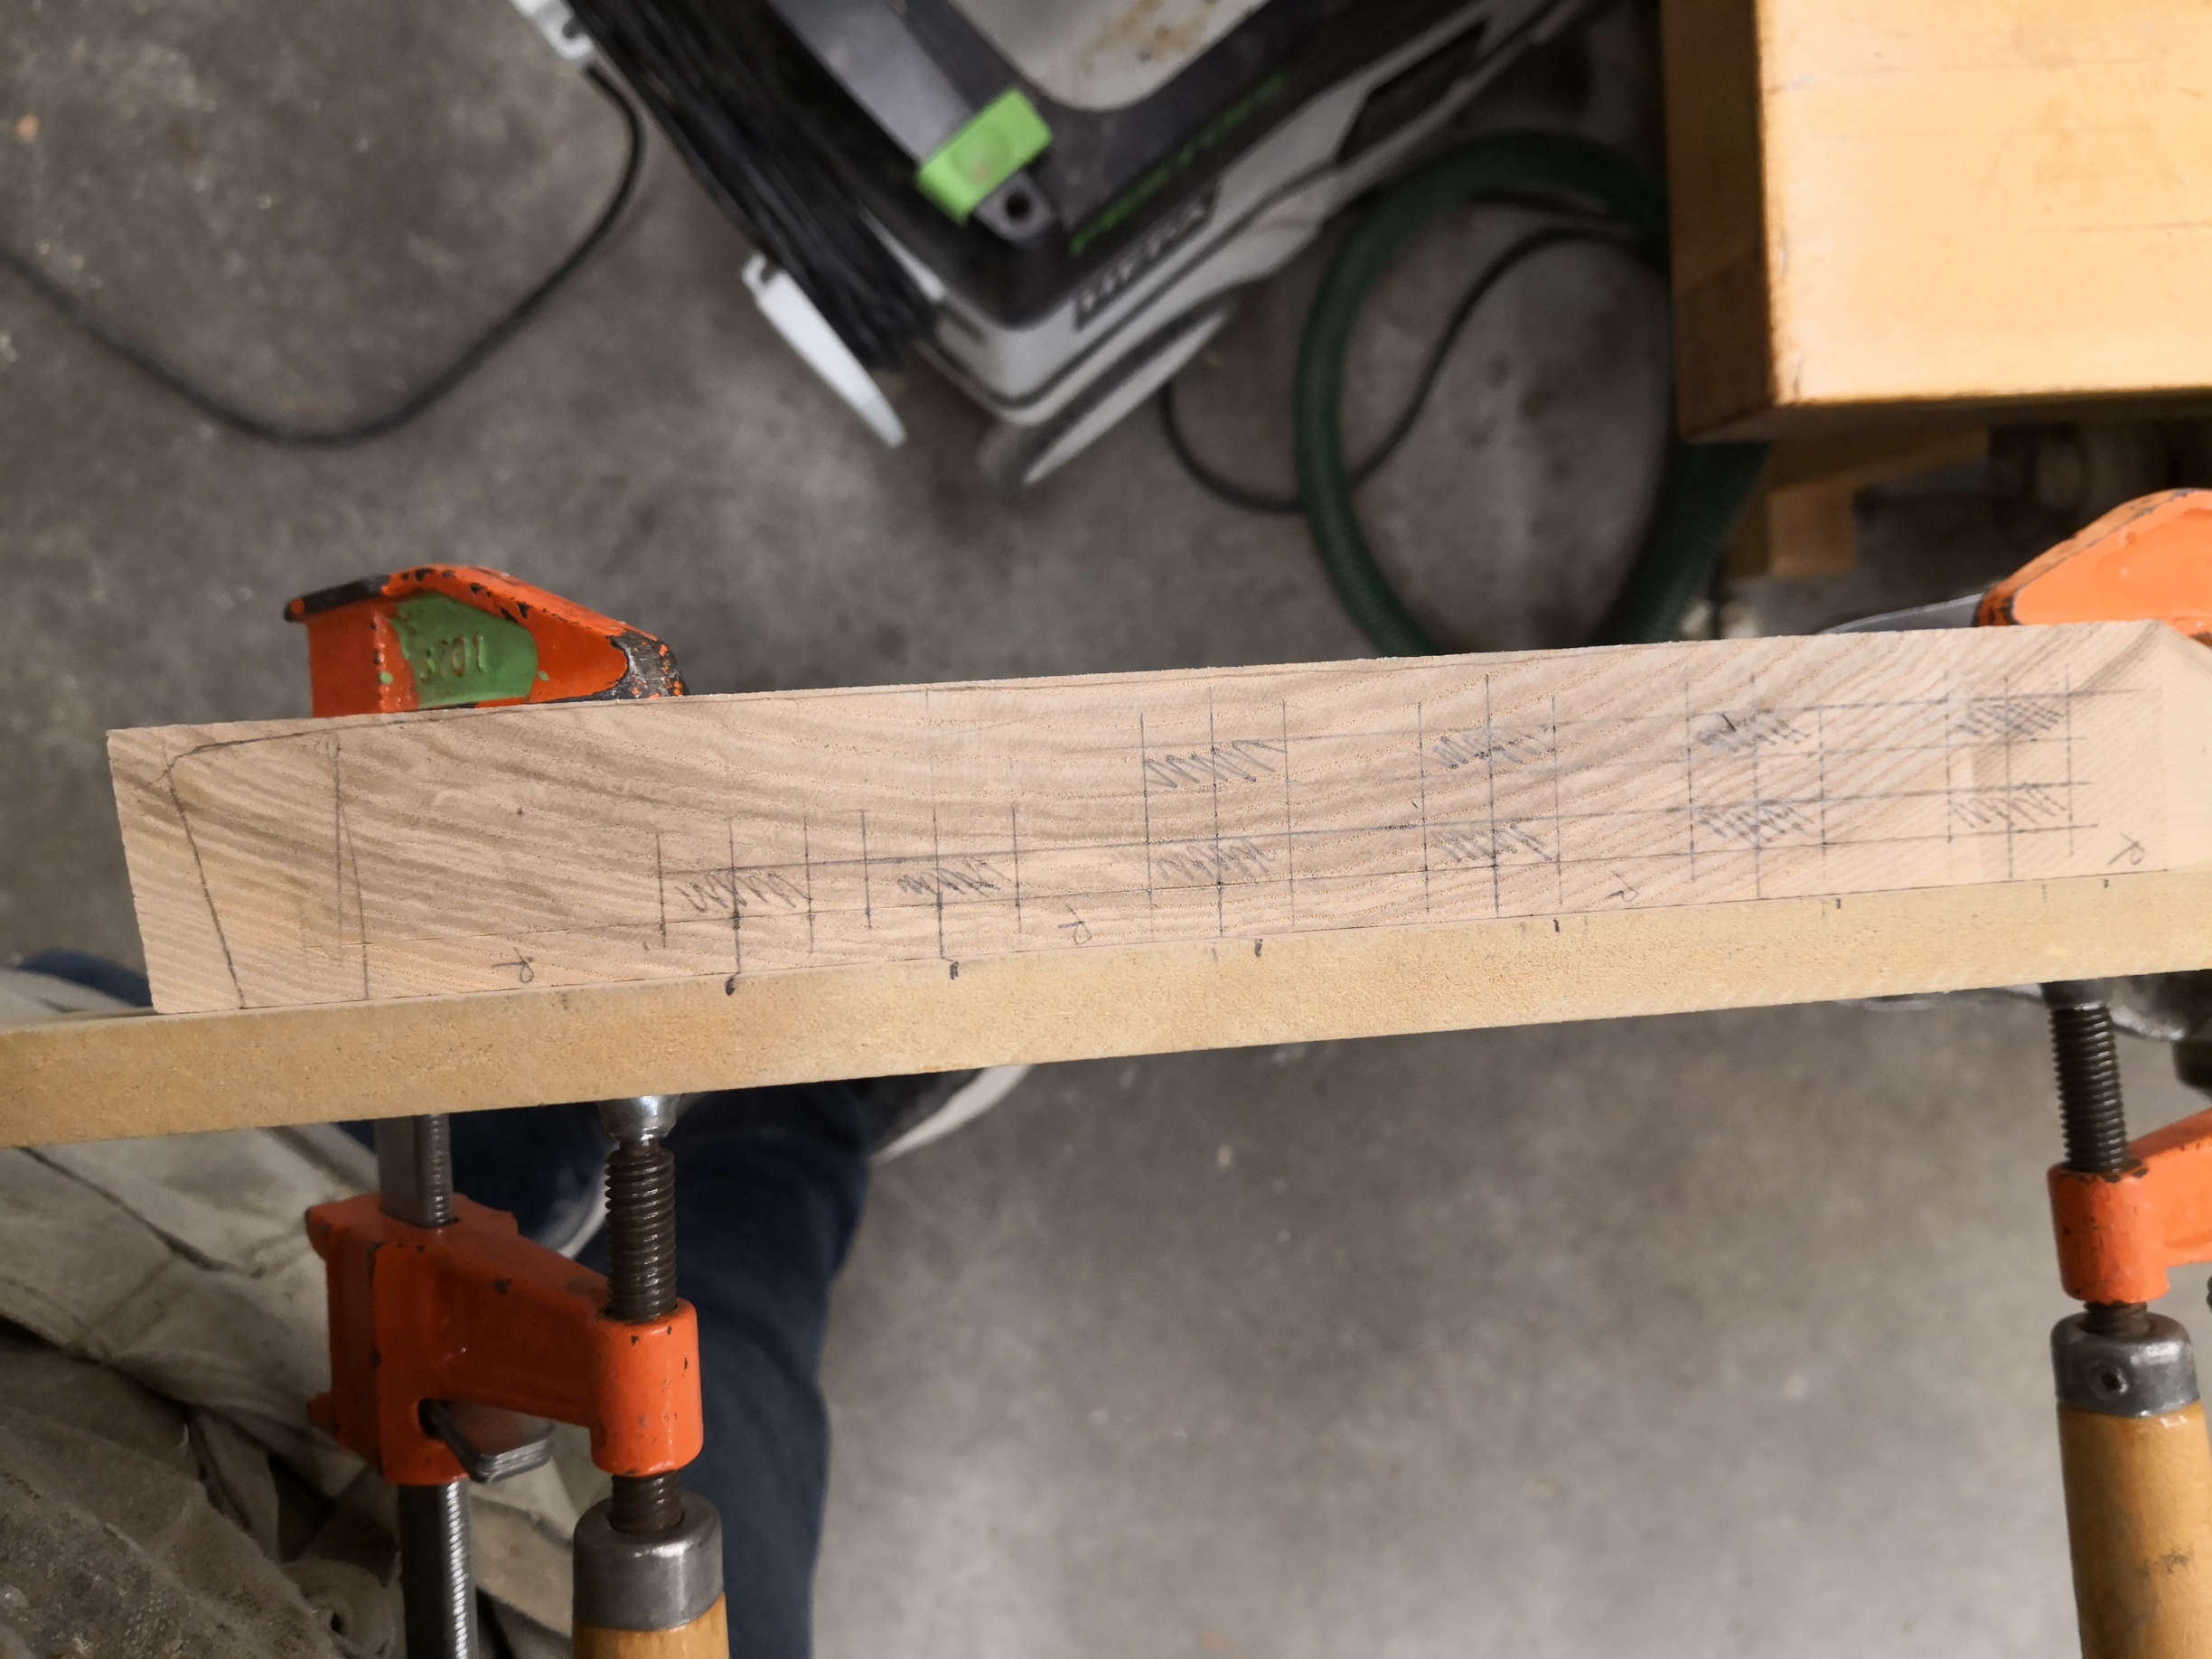 Joinery layout on font leg miter end grain